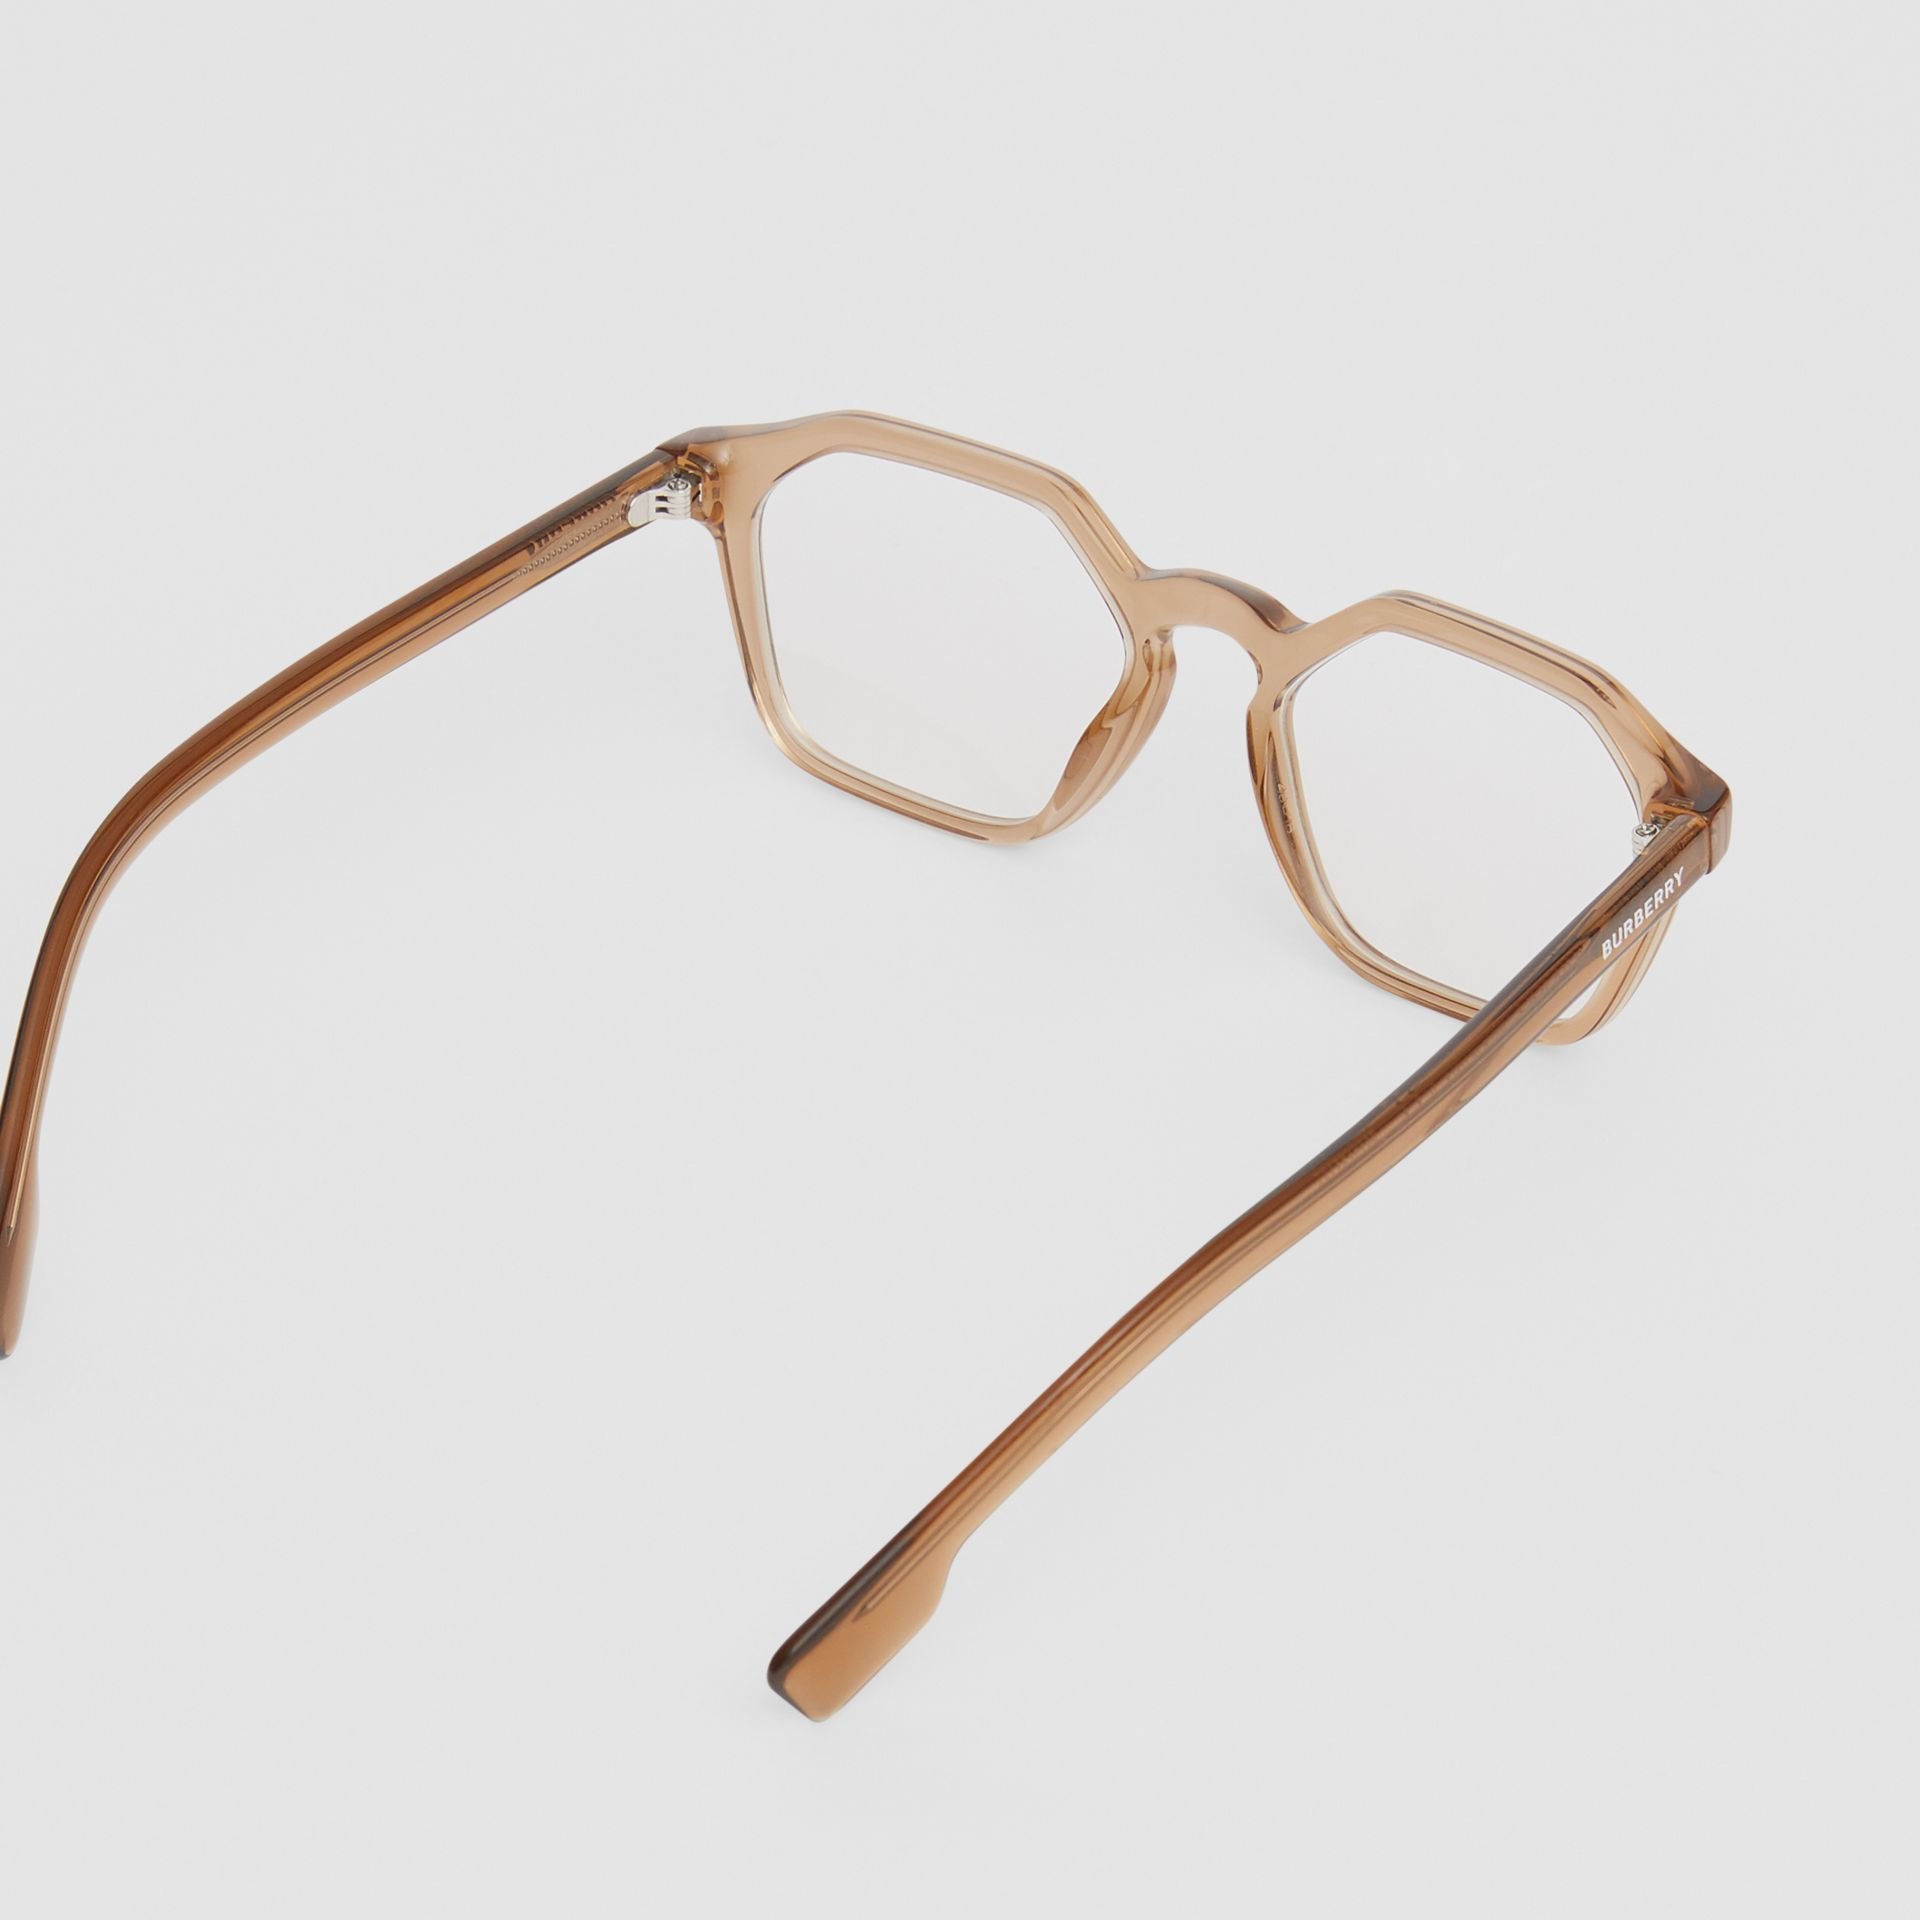 Geometric Optical Frames in Brown - Women | Burberry - gallery image 4